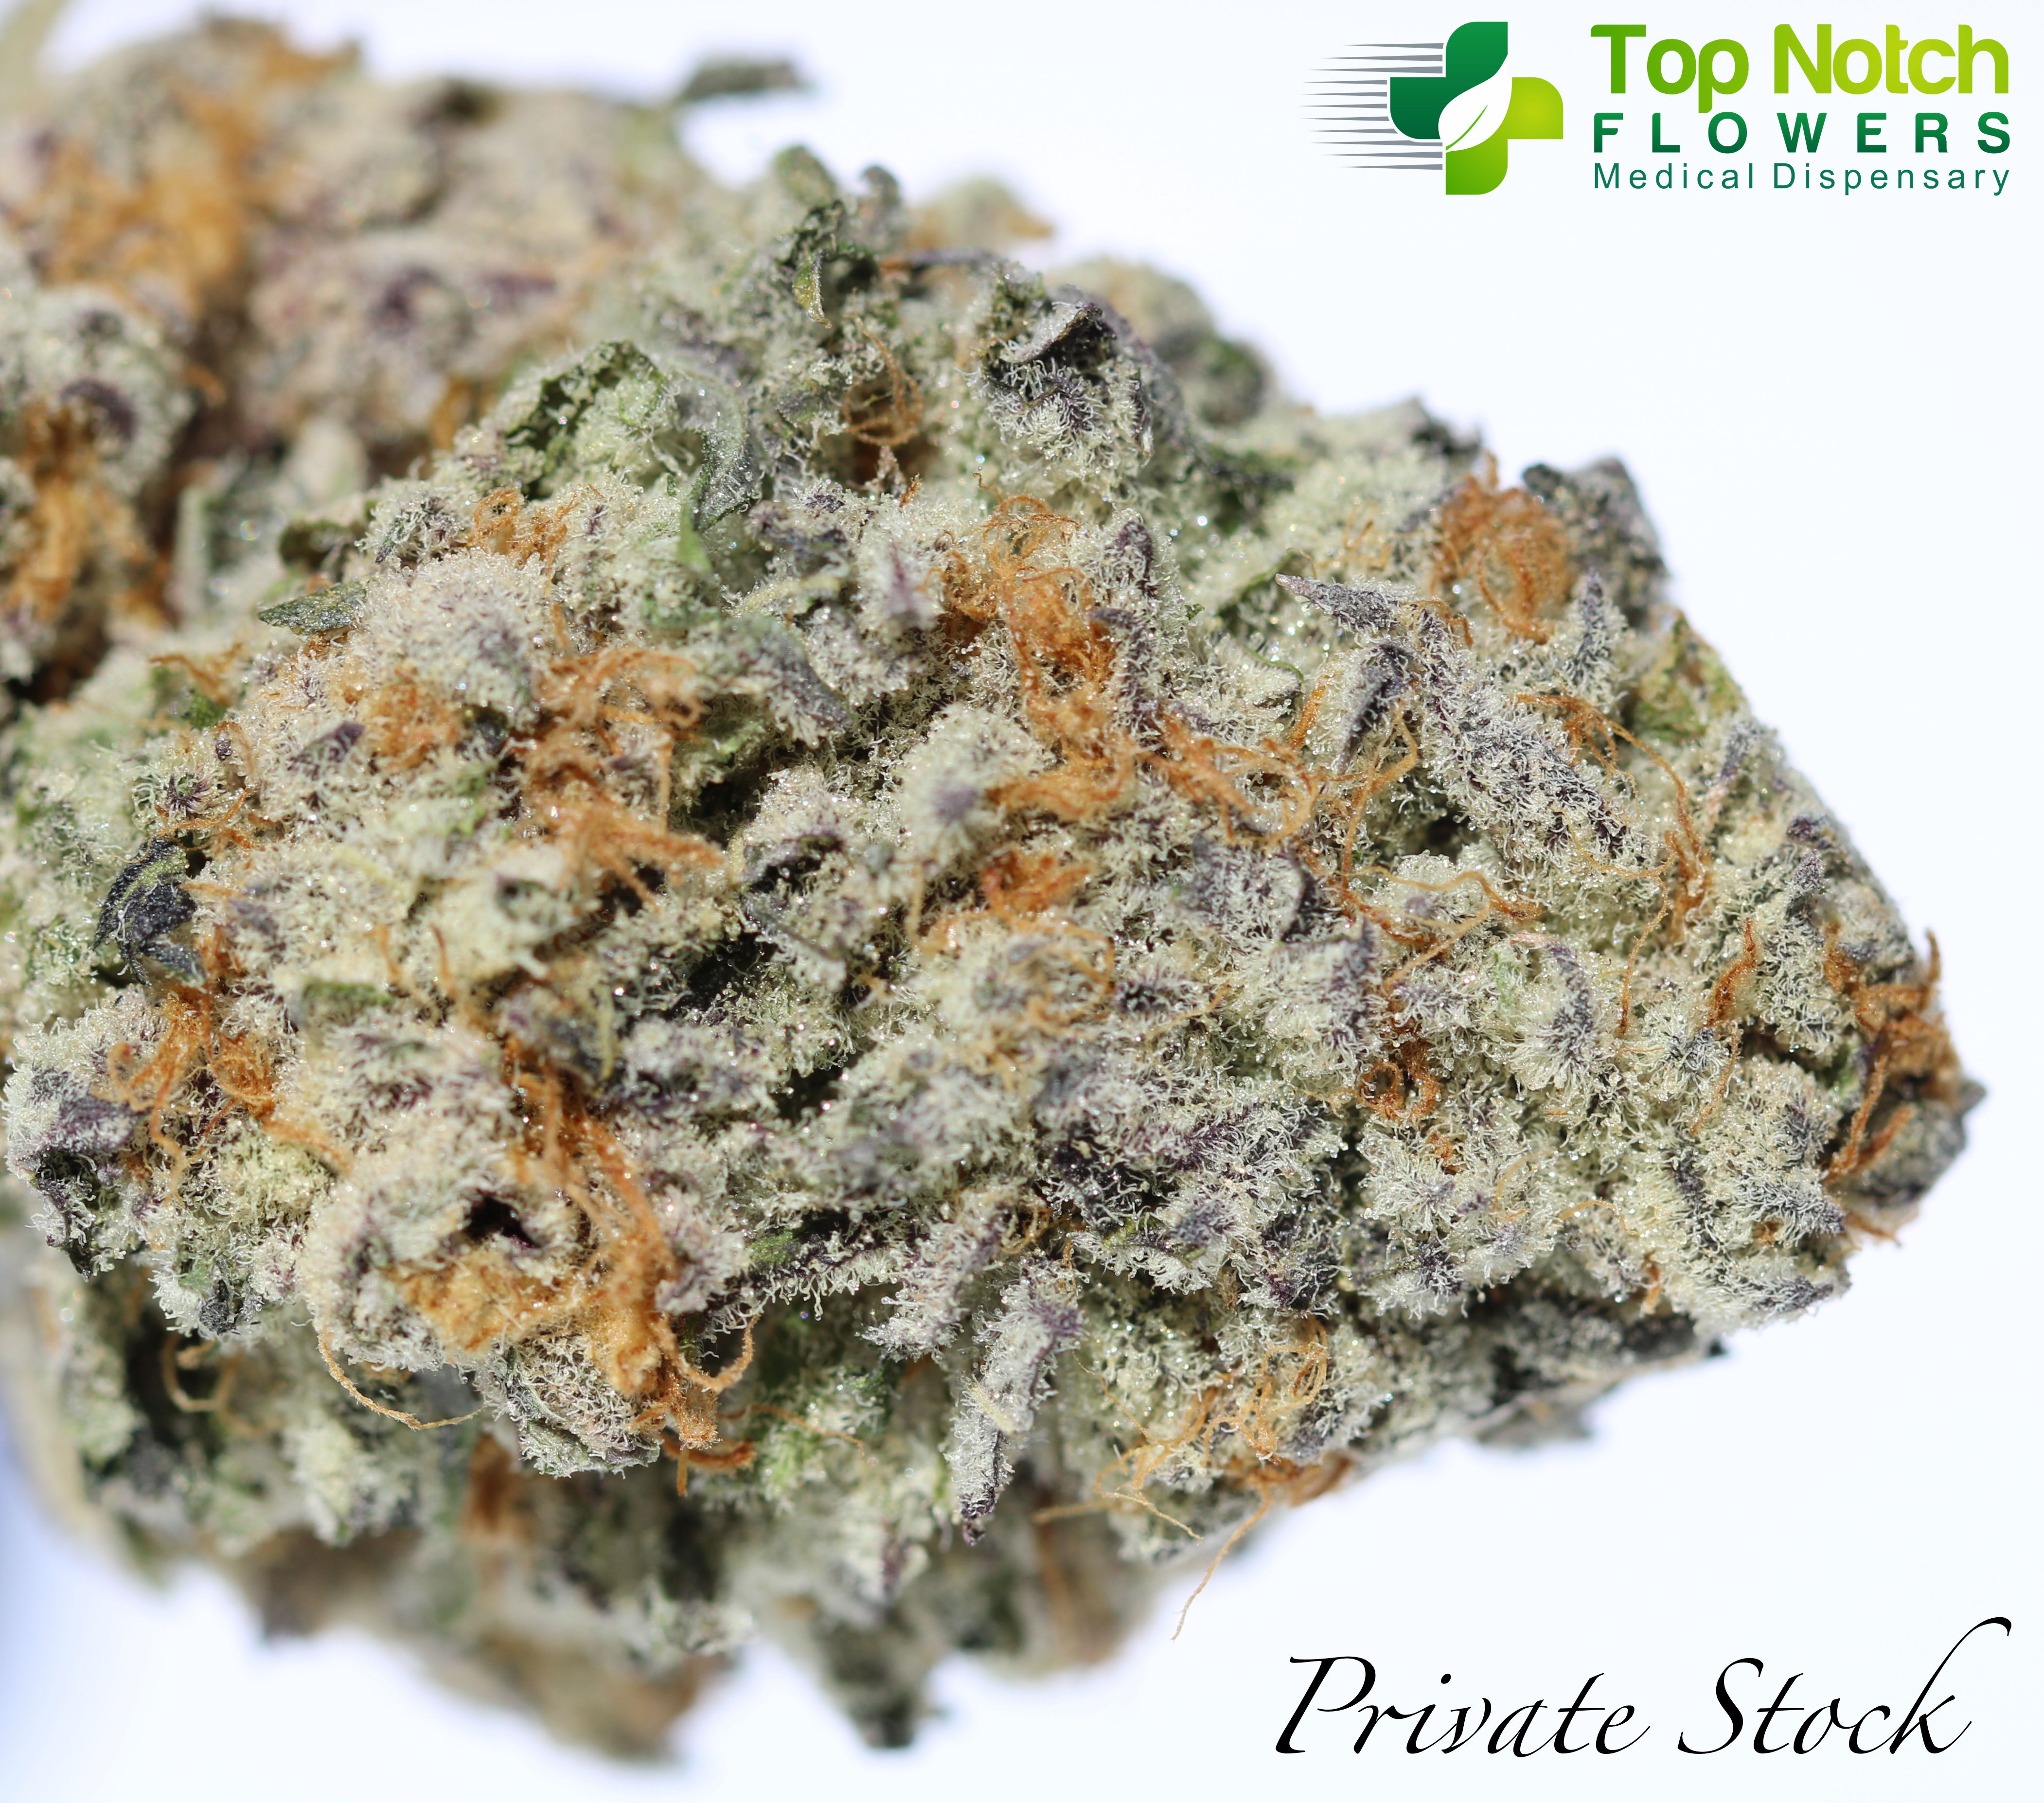 Private Stock Purple Punch